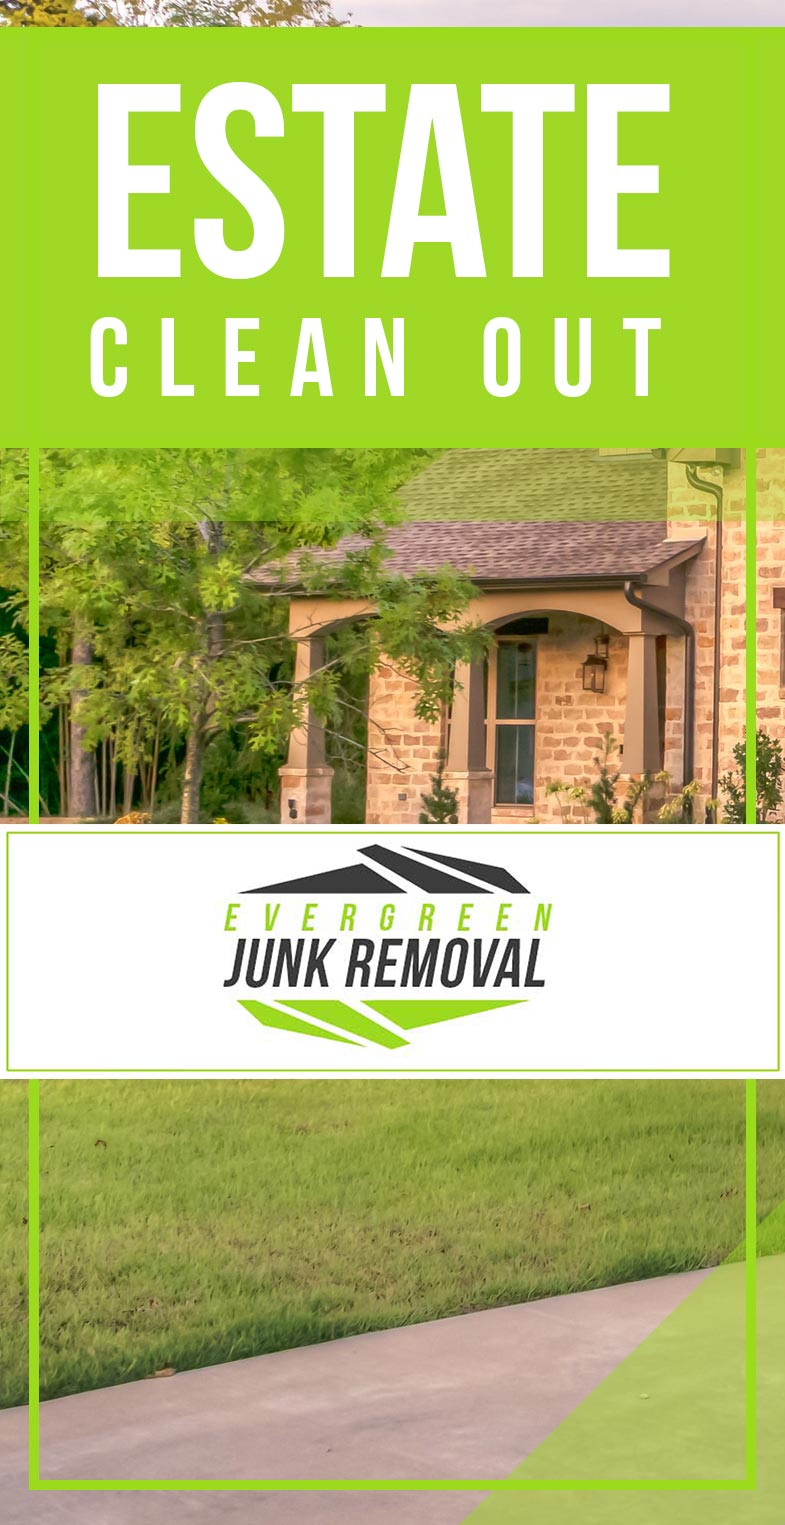 Junk Removal Lantana Estate Clean Out